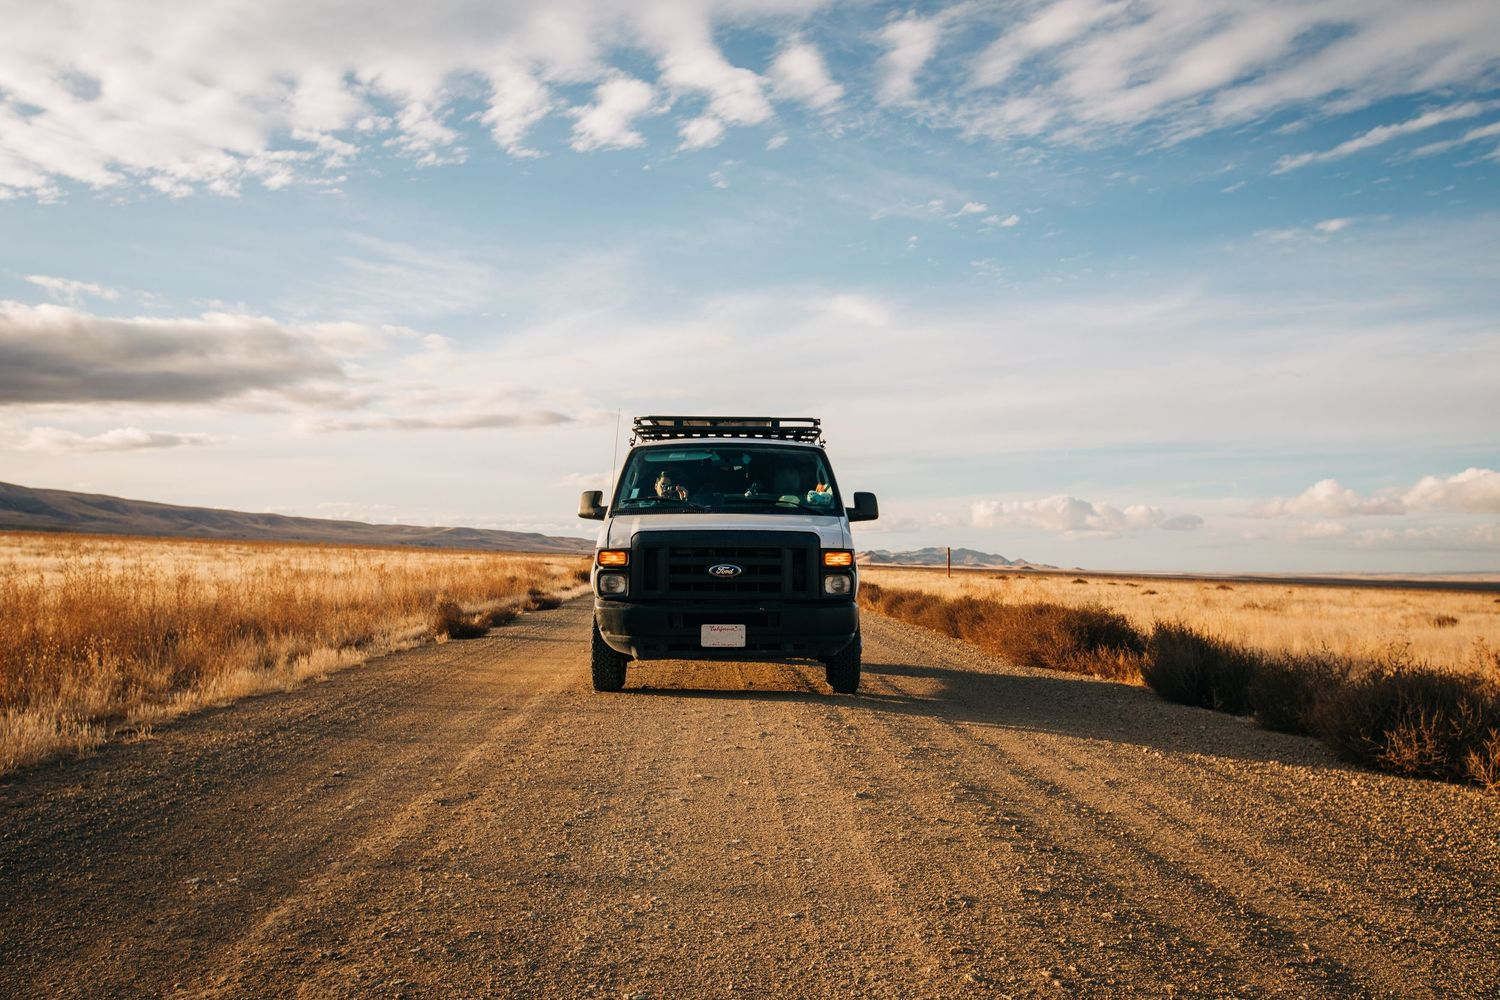 A Ford van stalls on a dirt road on the California plains.